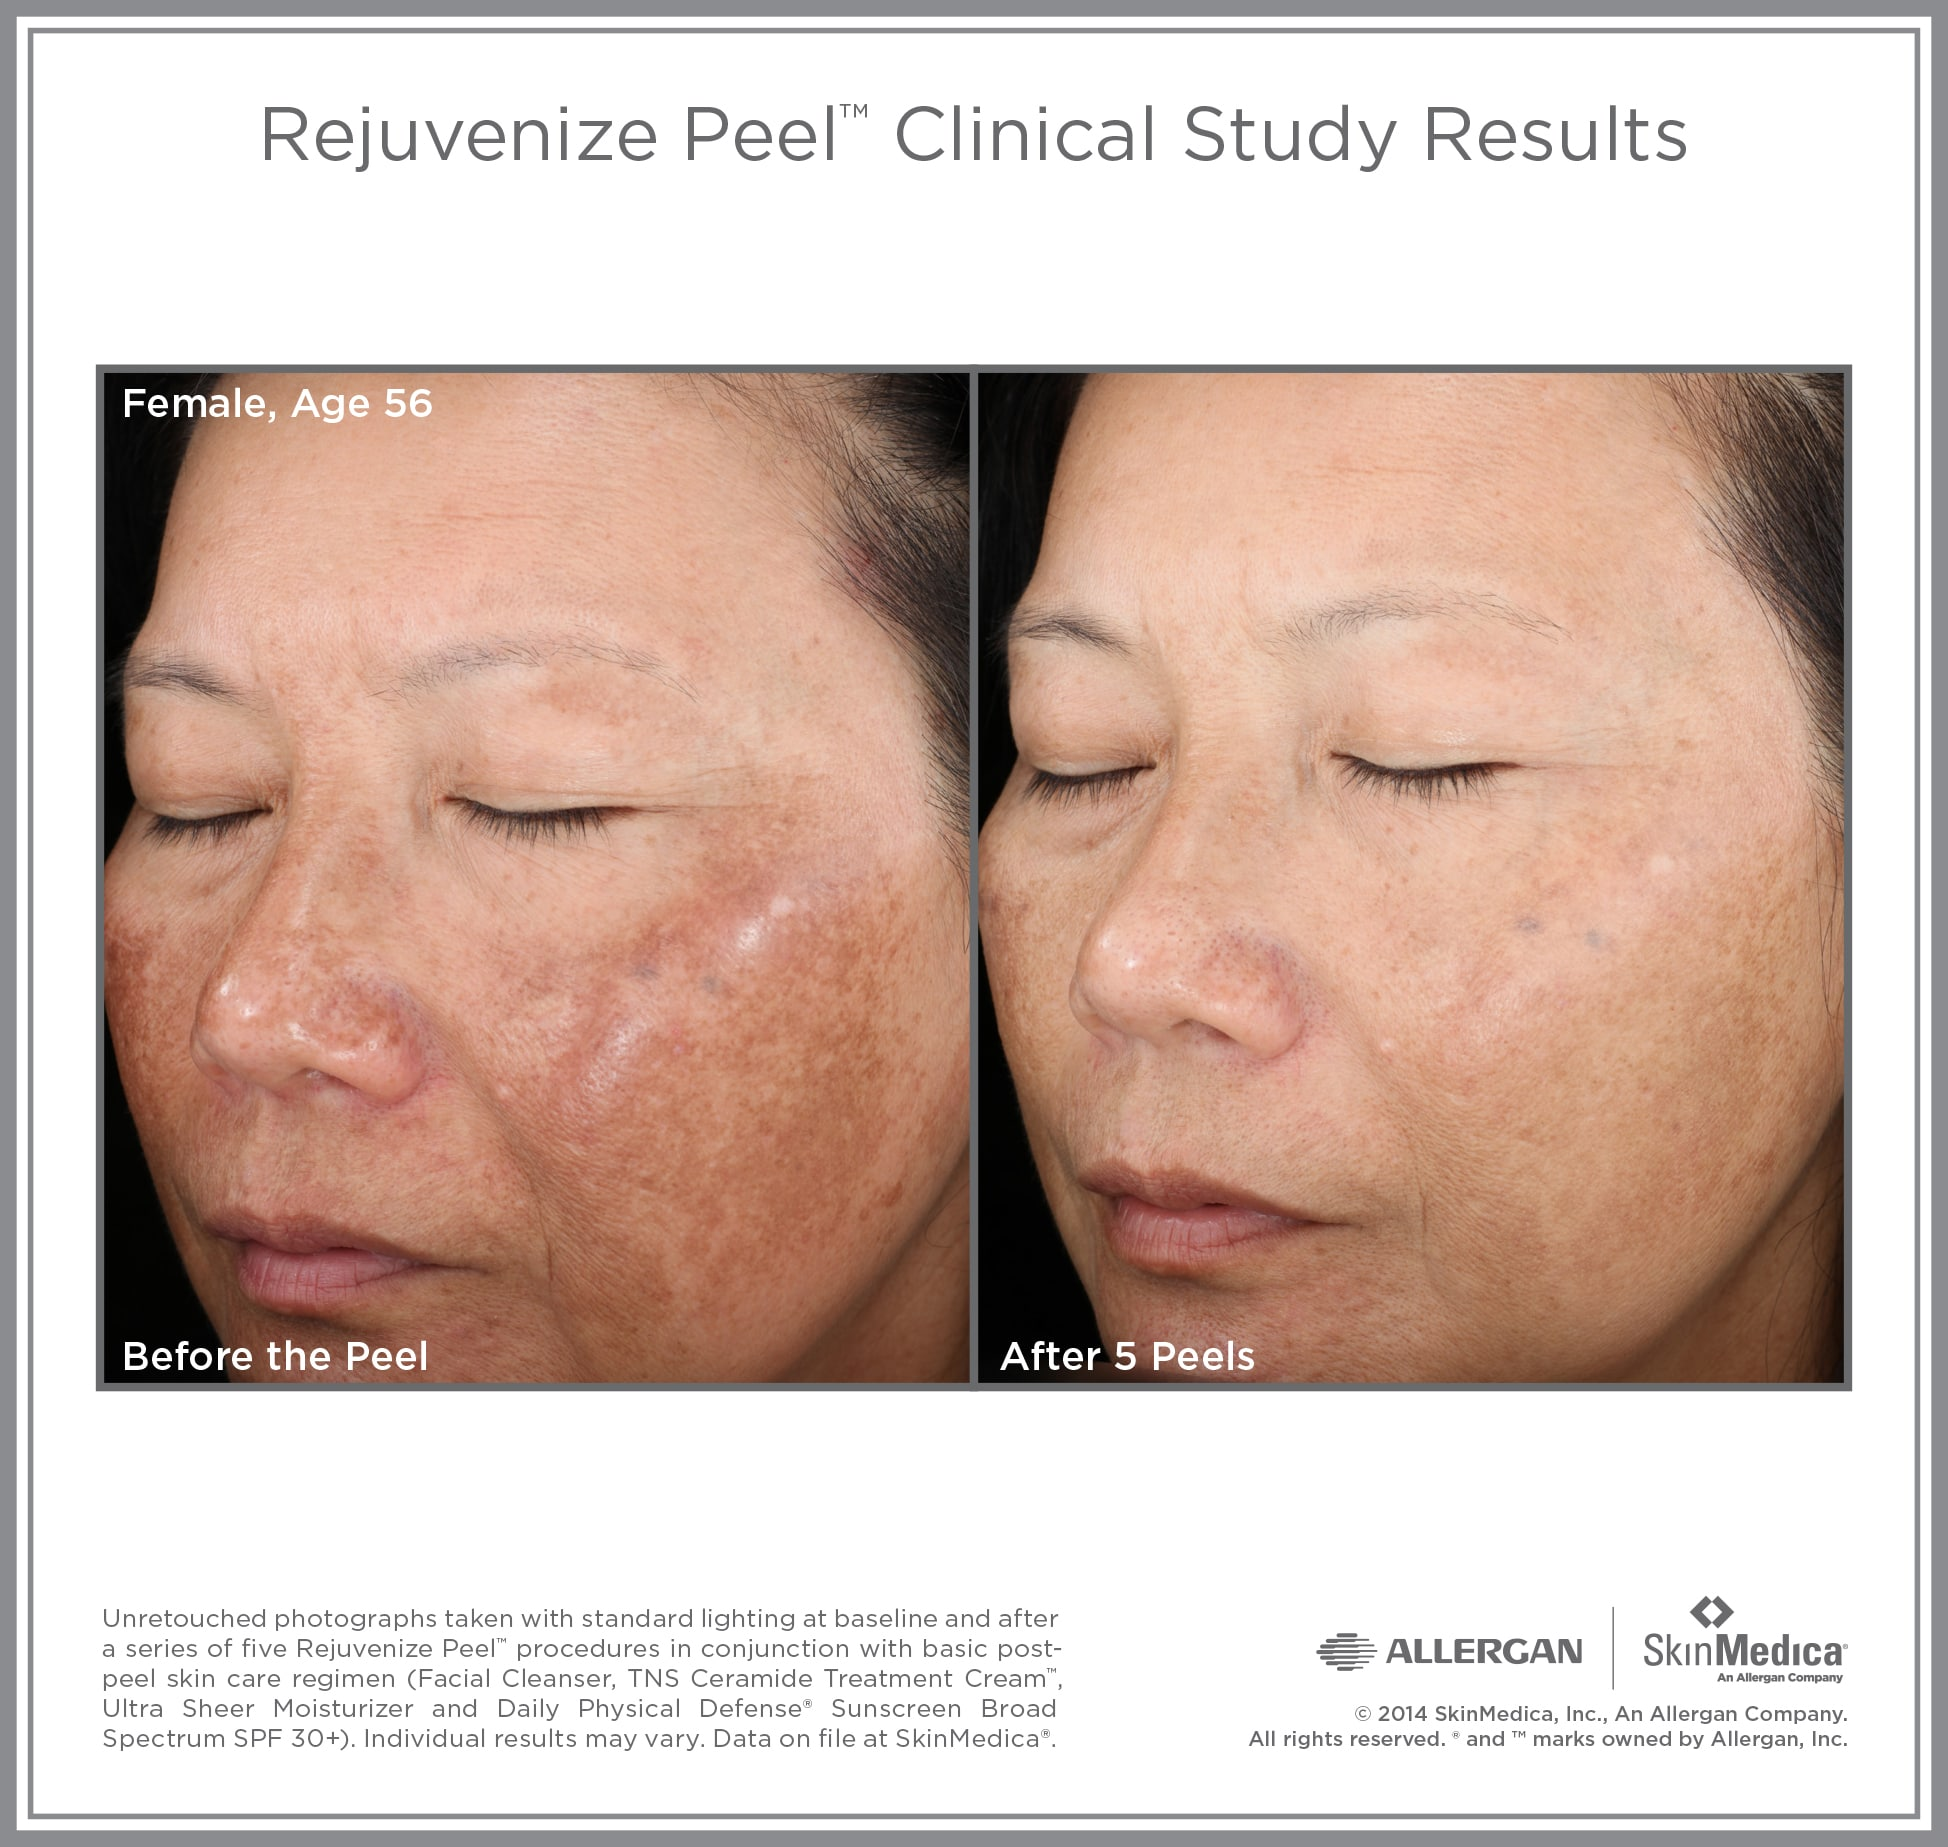 facial Peel Female Age 56